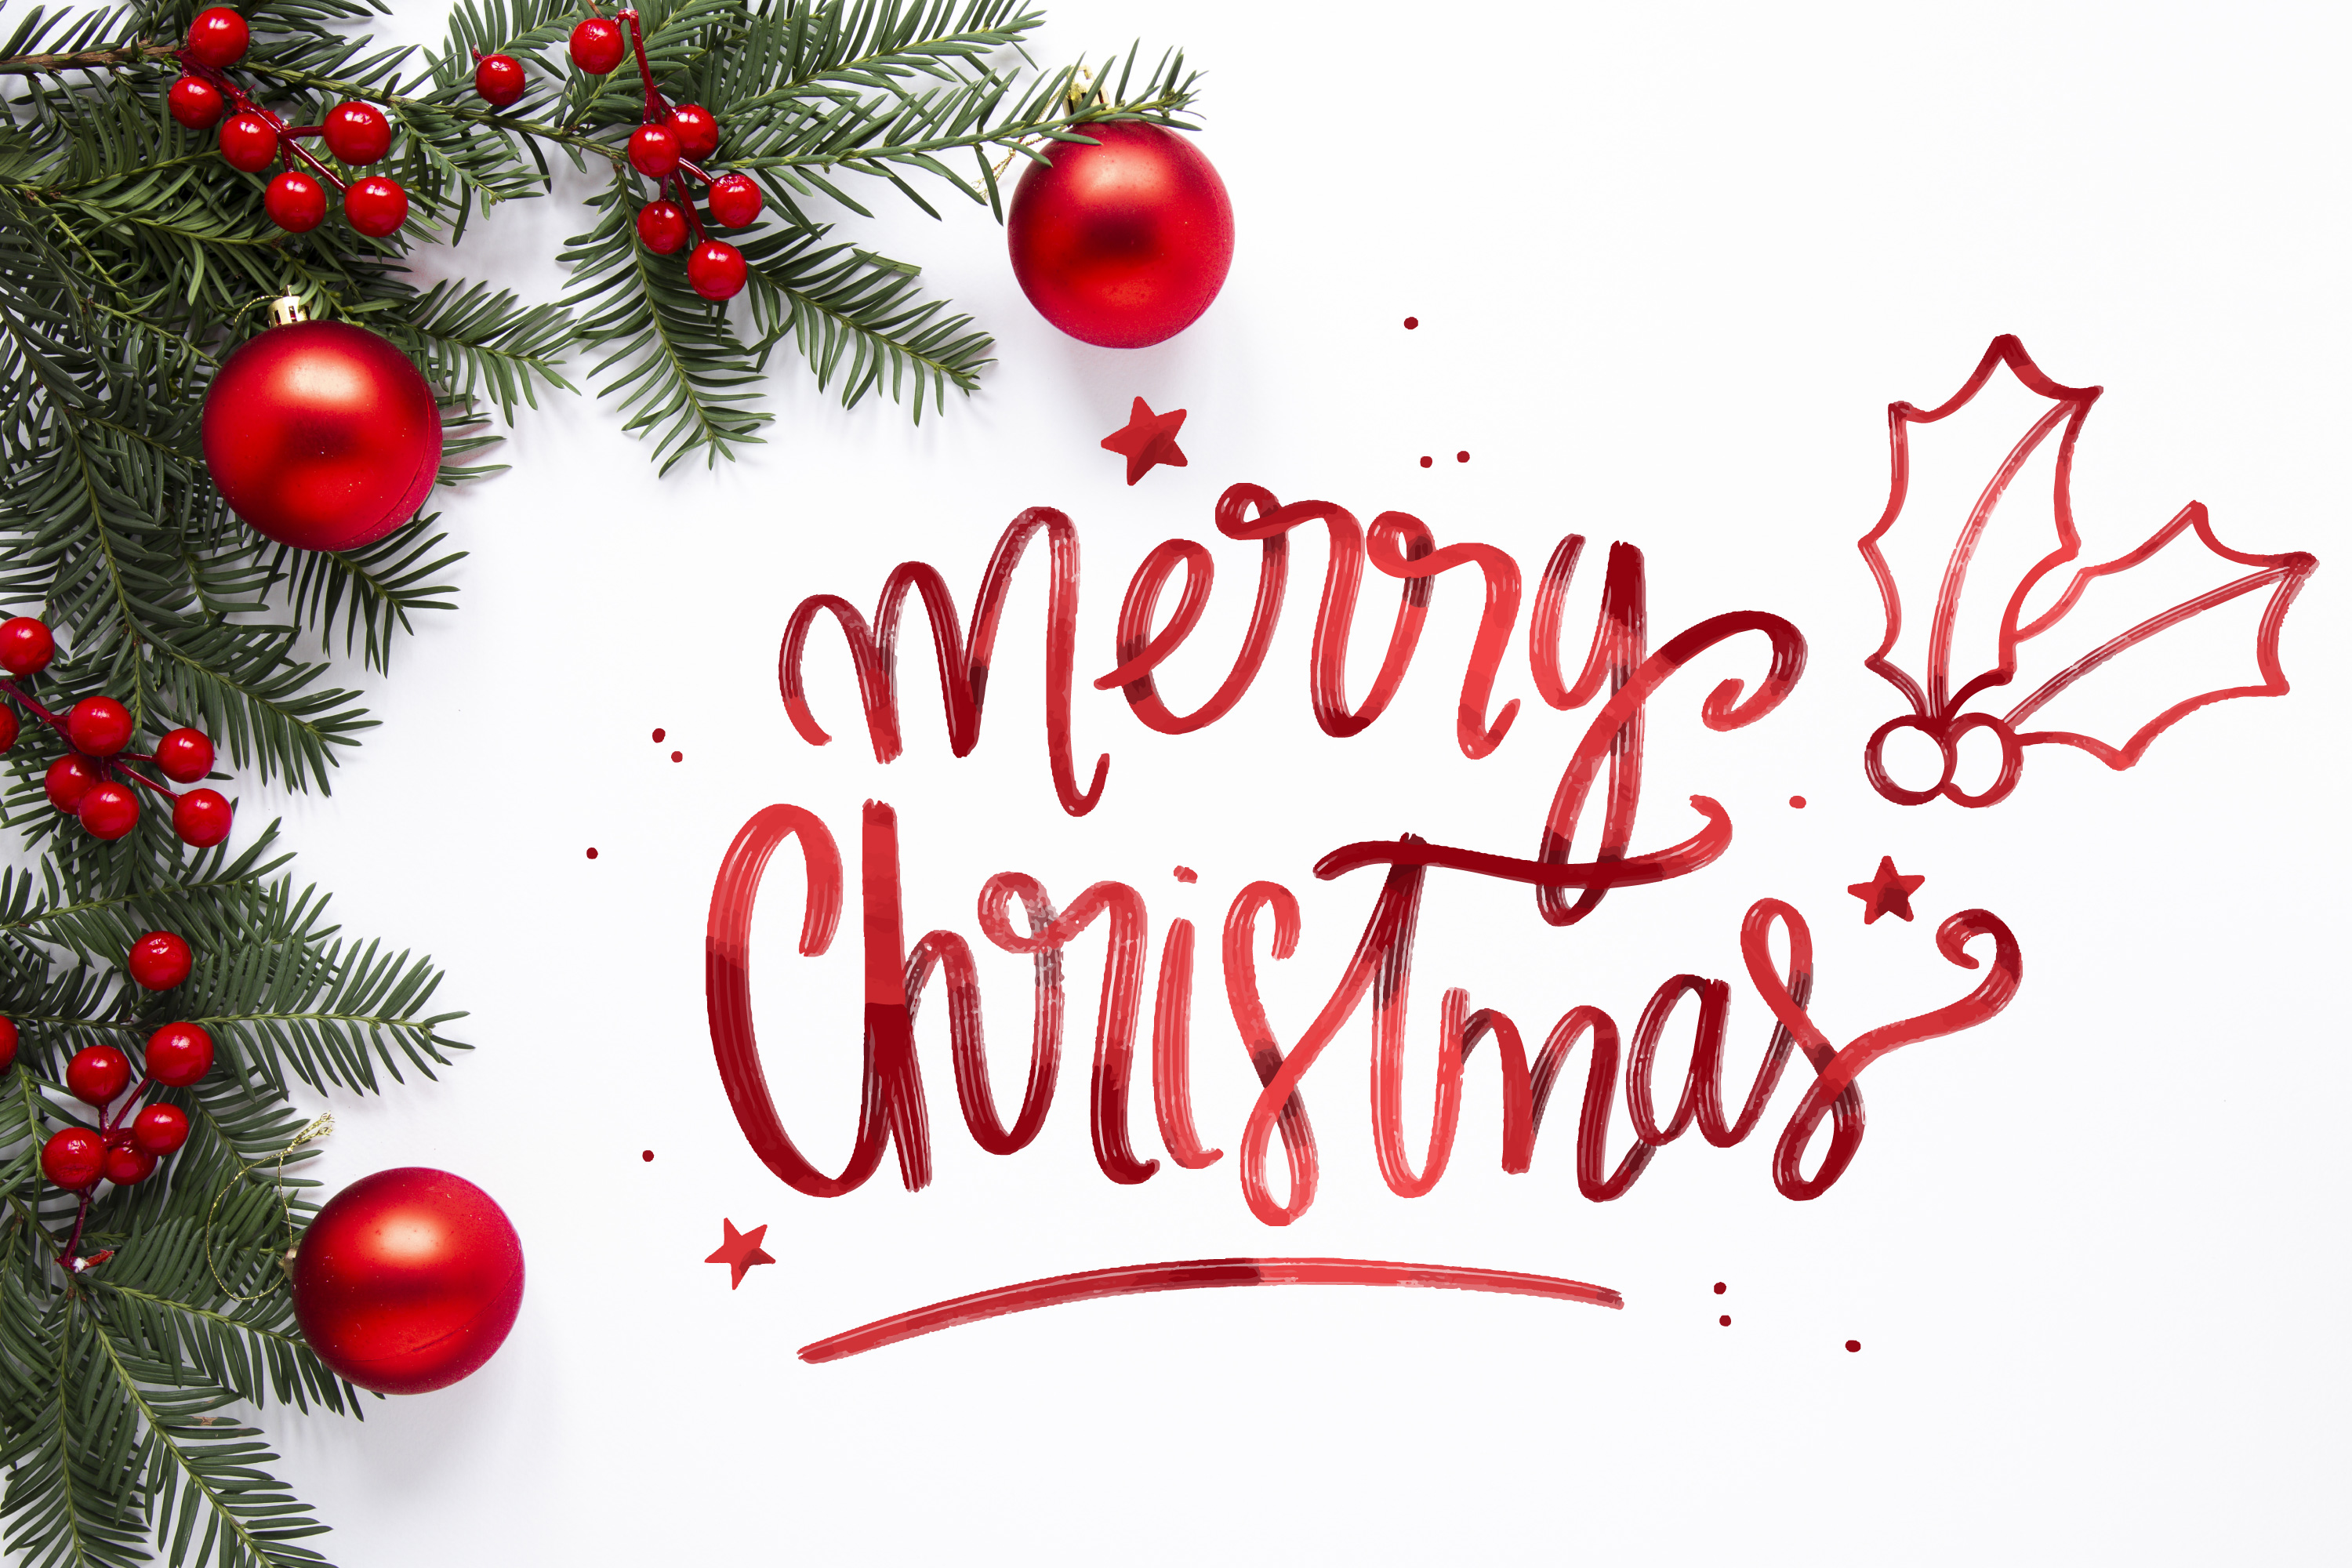 Merry Christmas and a Happy New Year everyone! | News Post Page